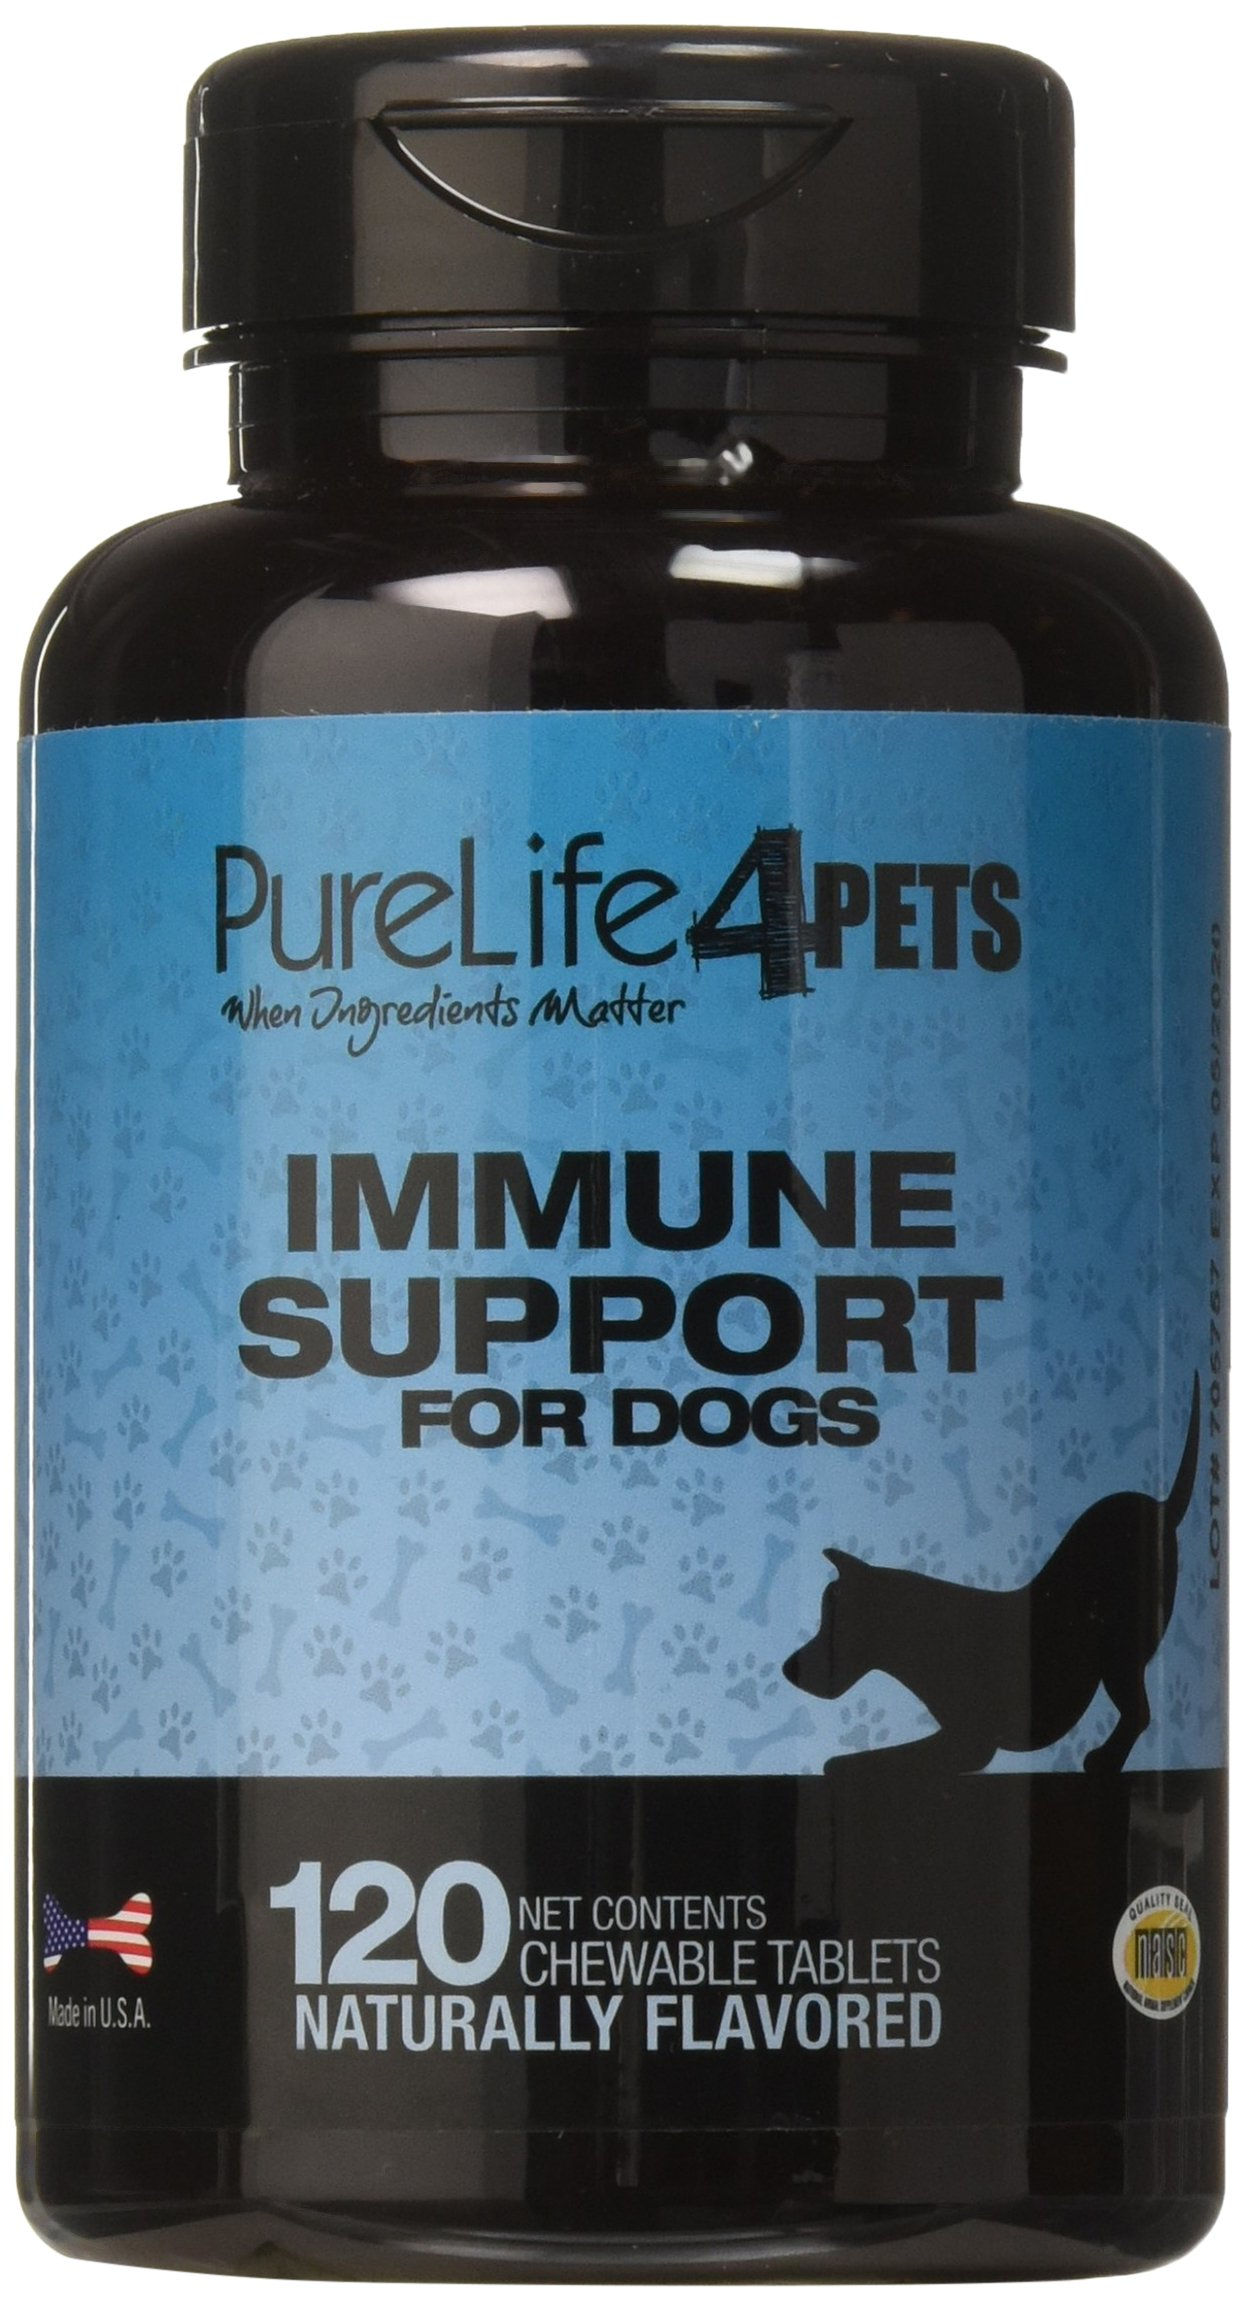 Immune Support Supplement for Dogs – 120 natural chews tablets with Organic Spirulina, Astaxanthin and Coenzyme Q10 – Provides antioxidants – Supports overall ocular health - Made in USA